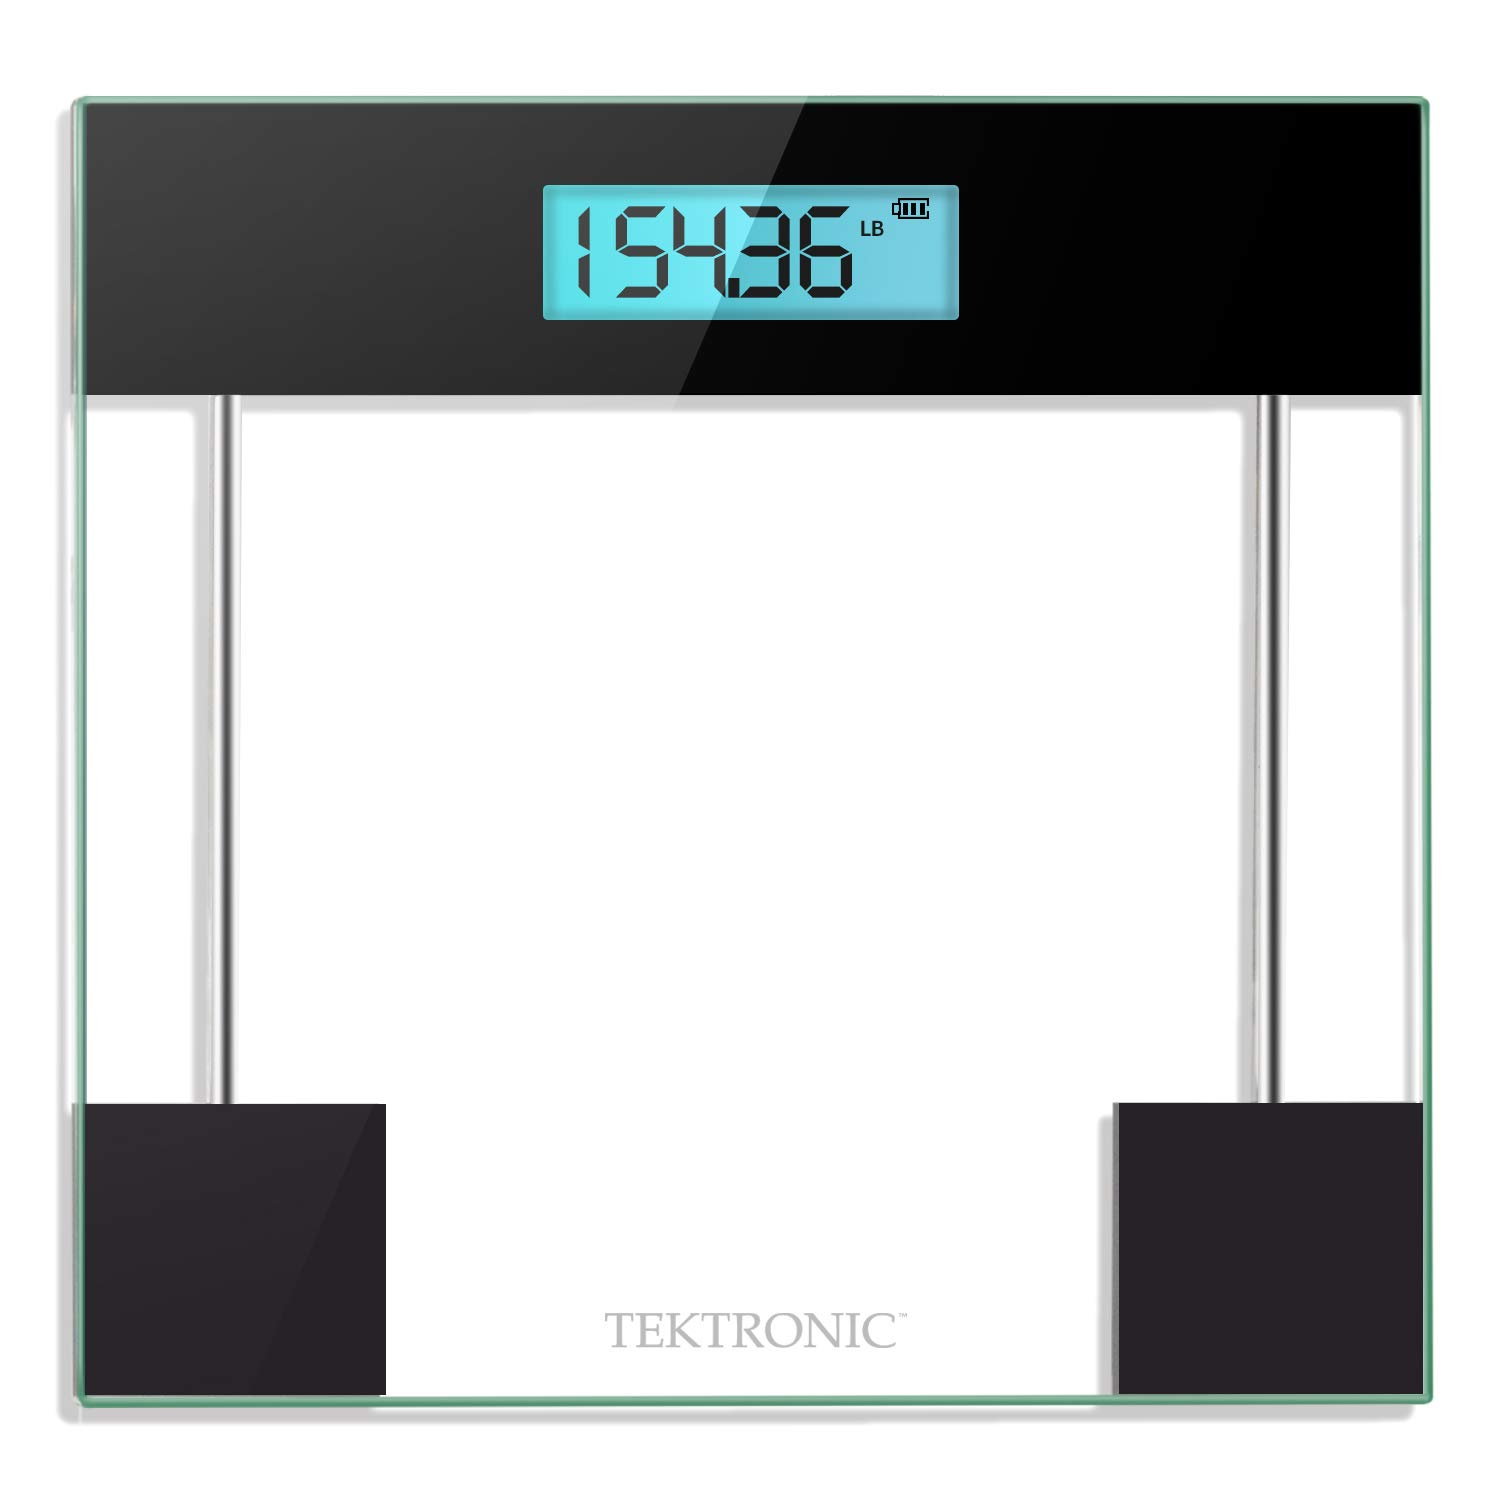 TekTronic Digital Body Weight Bathroom Scale with Step-On Technology - High Precision - Body Tape Measure - 8mm Tempered Glass (Max 400 lbs. Elegant Black)